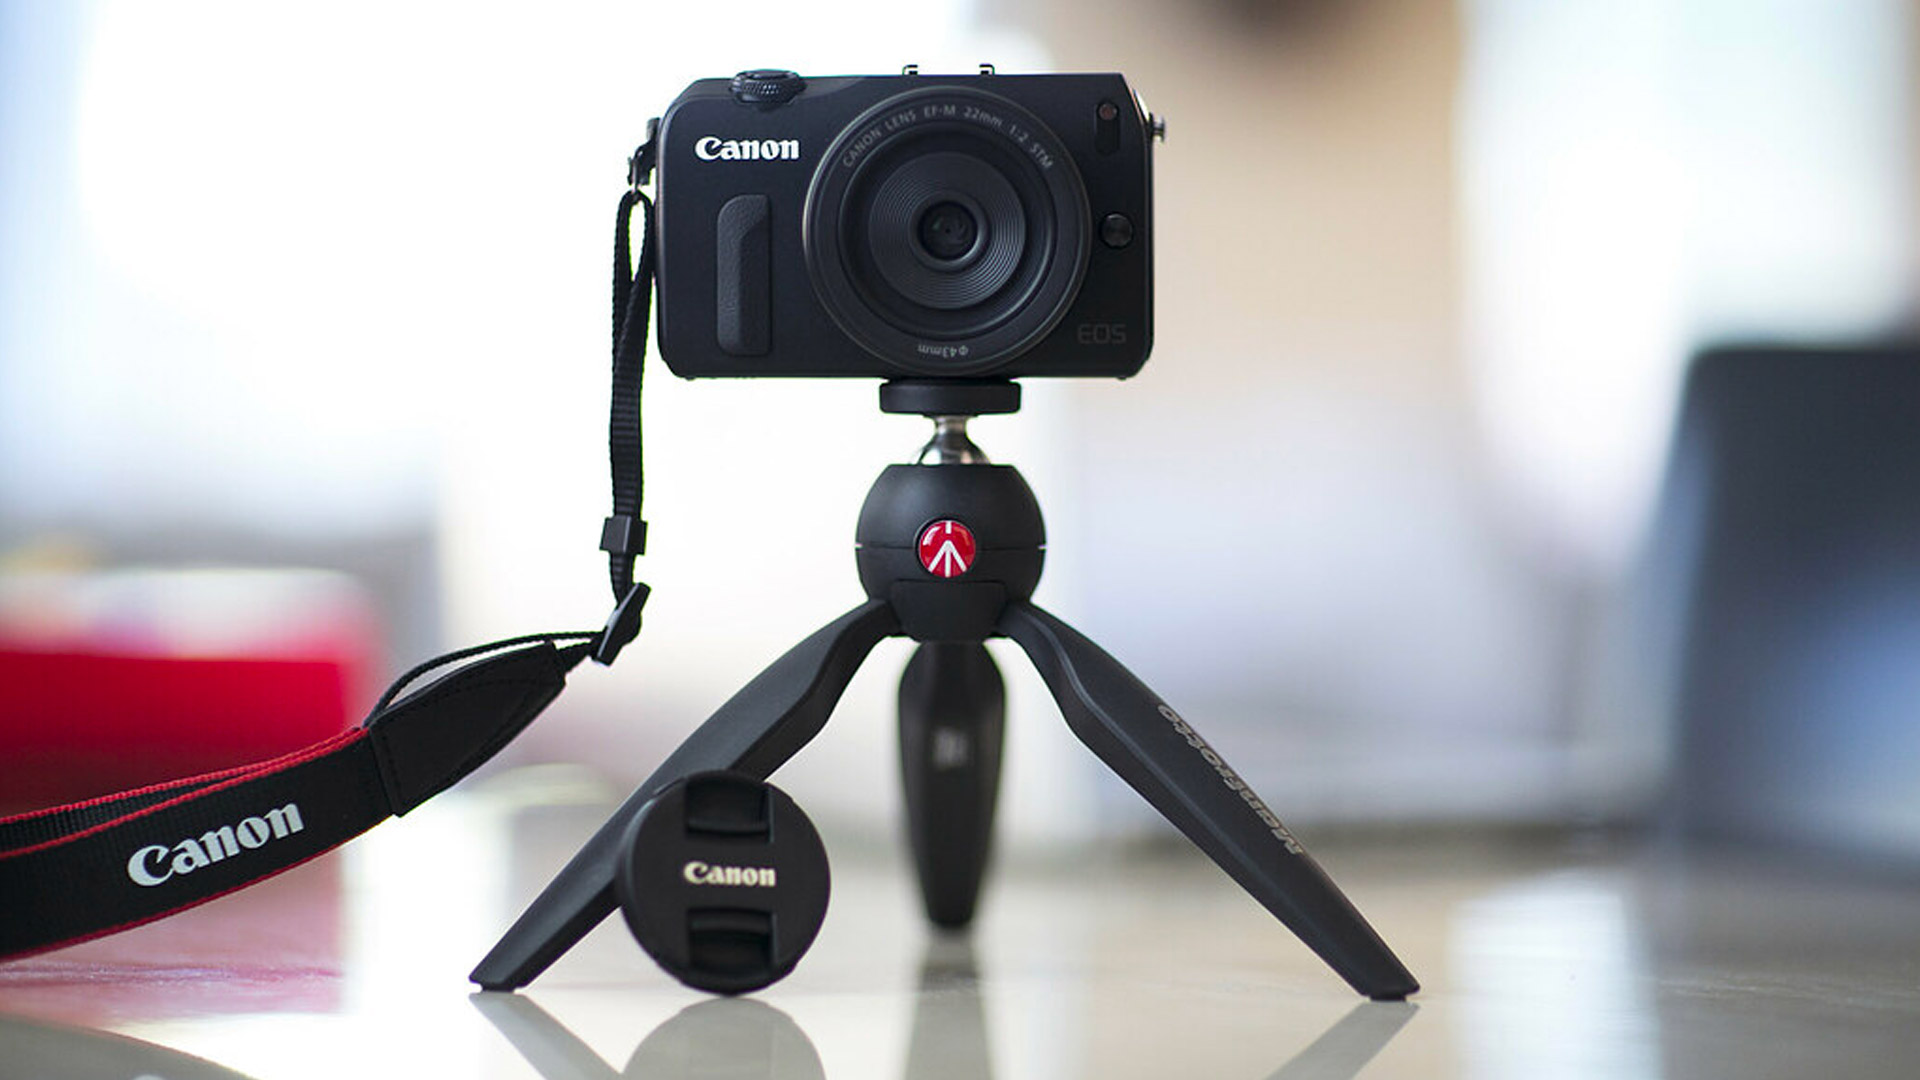 Manfrotto Mini stativ